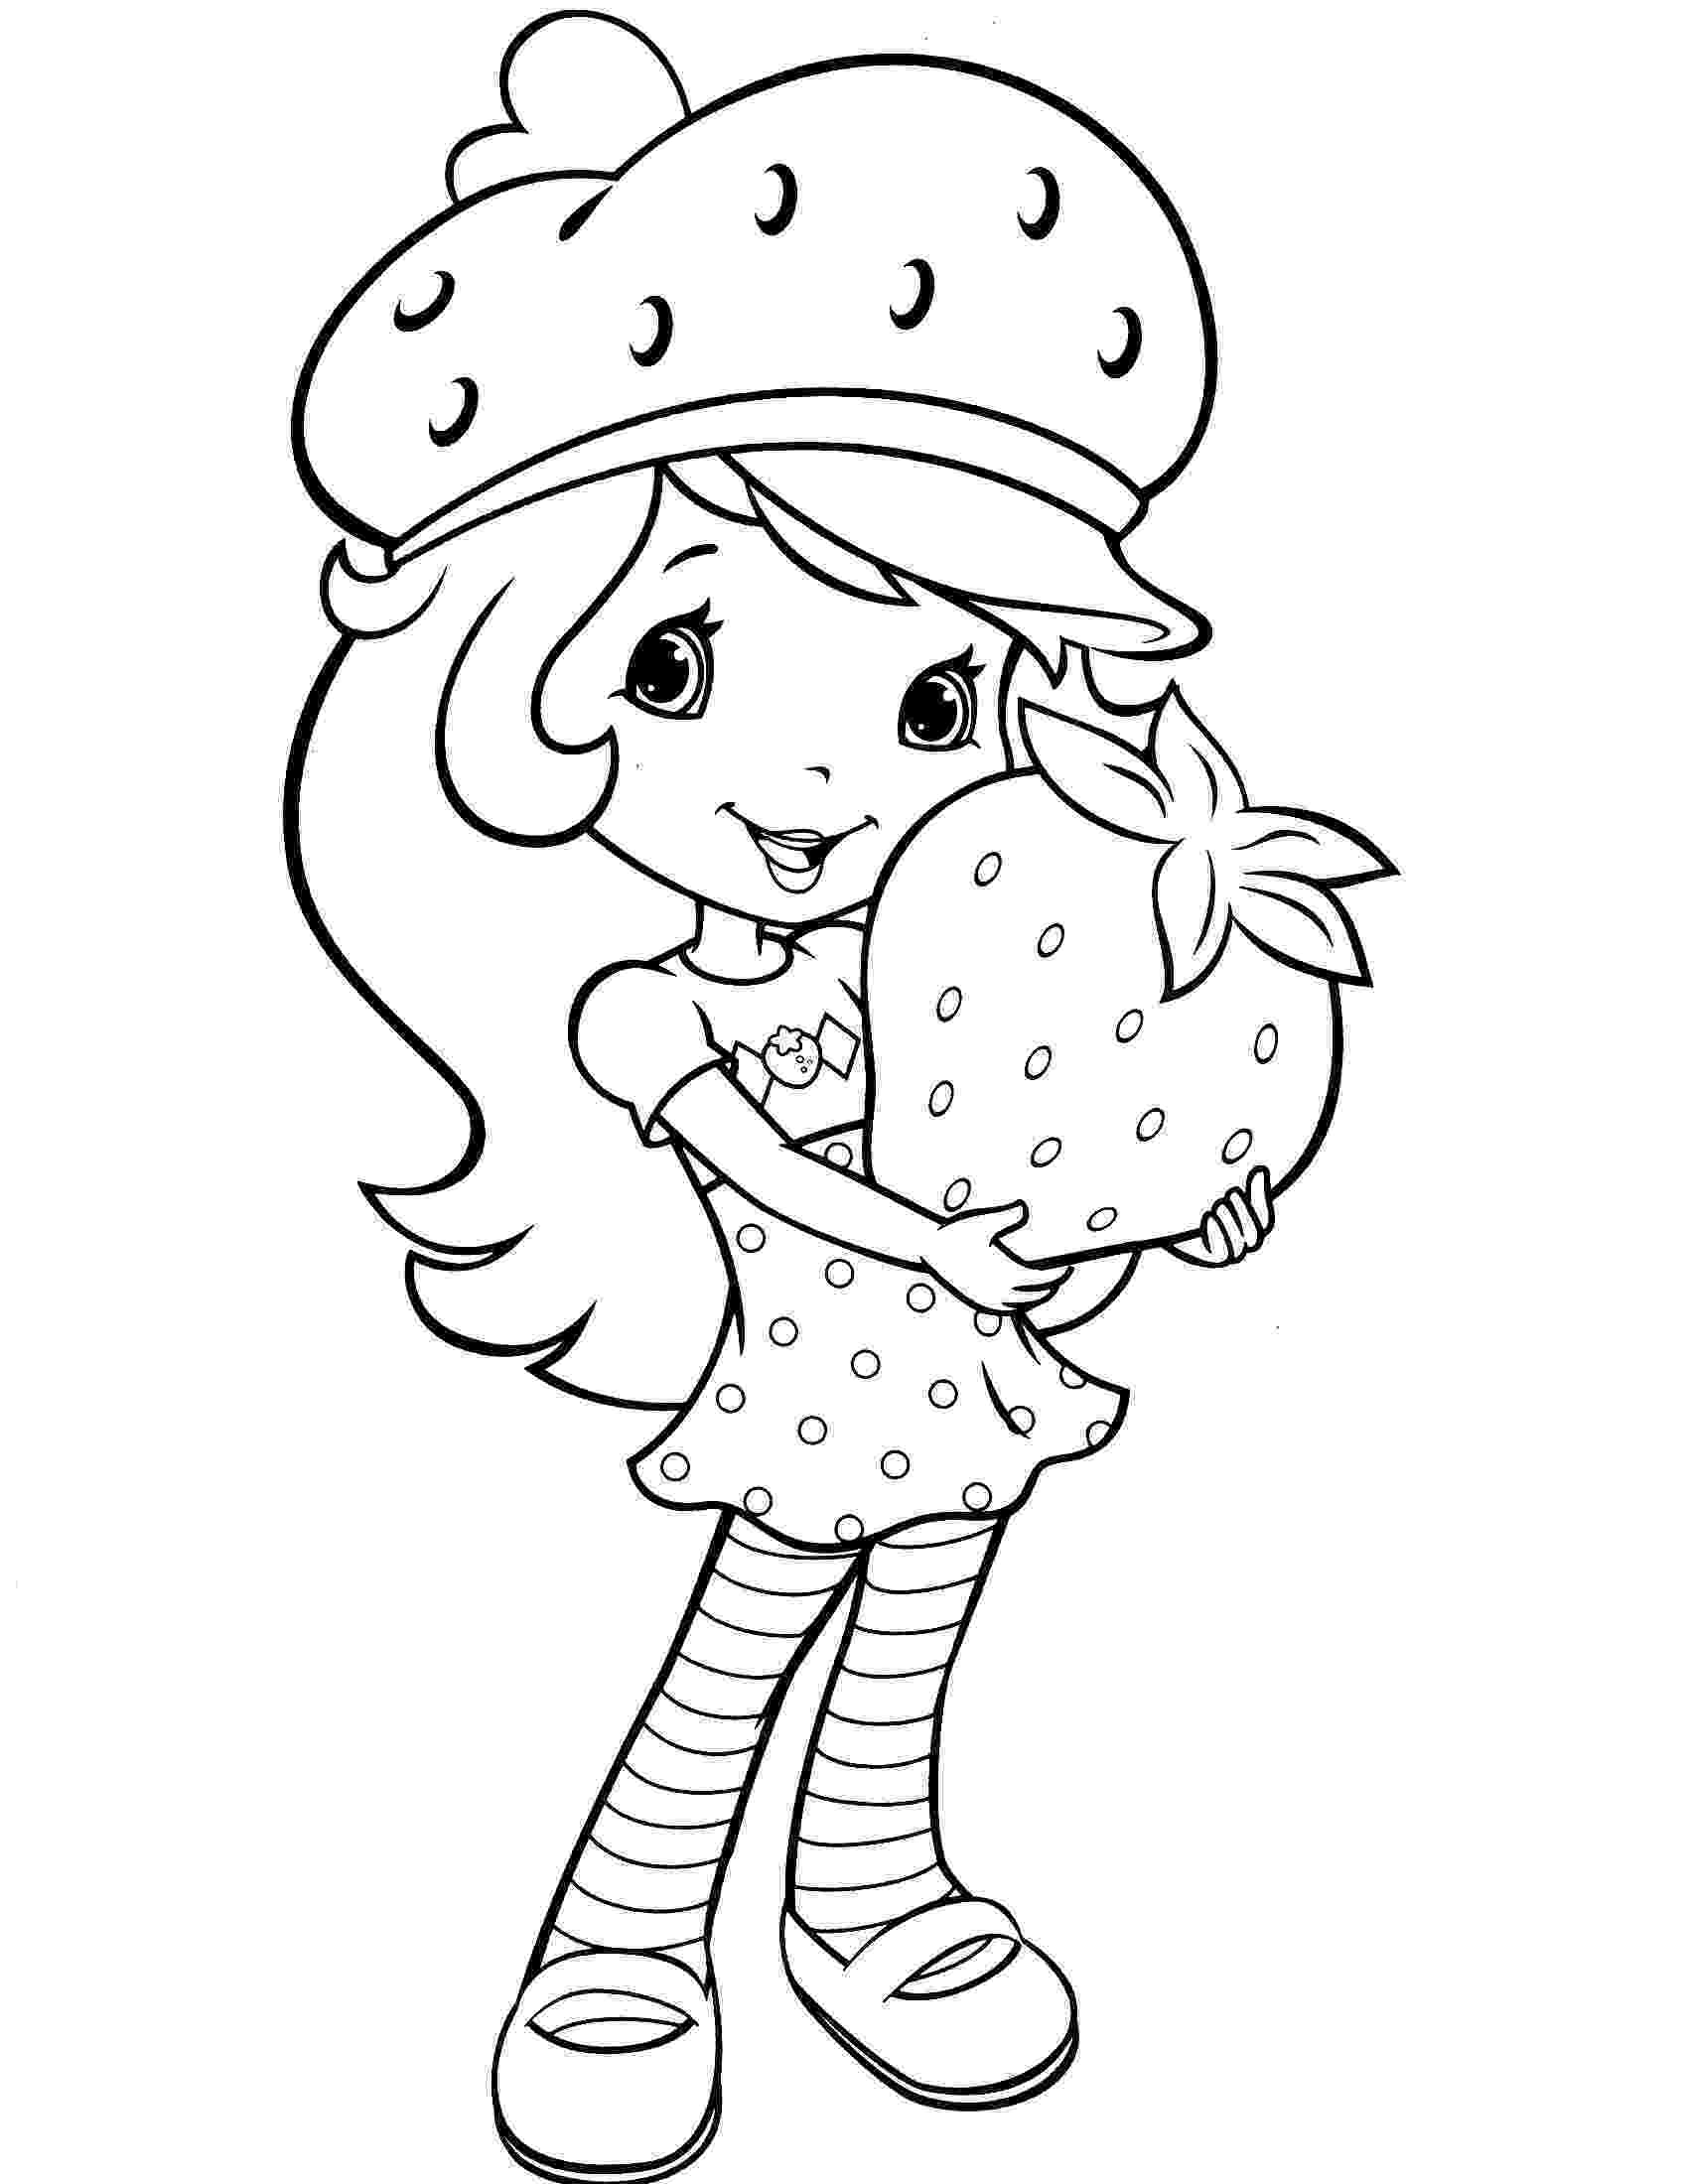 strawberry shortcake coloring pictures baby strawberry shortcake with baby pupcake and custard strawberry shortcake pictures coloring